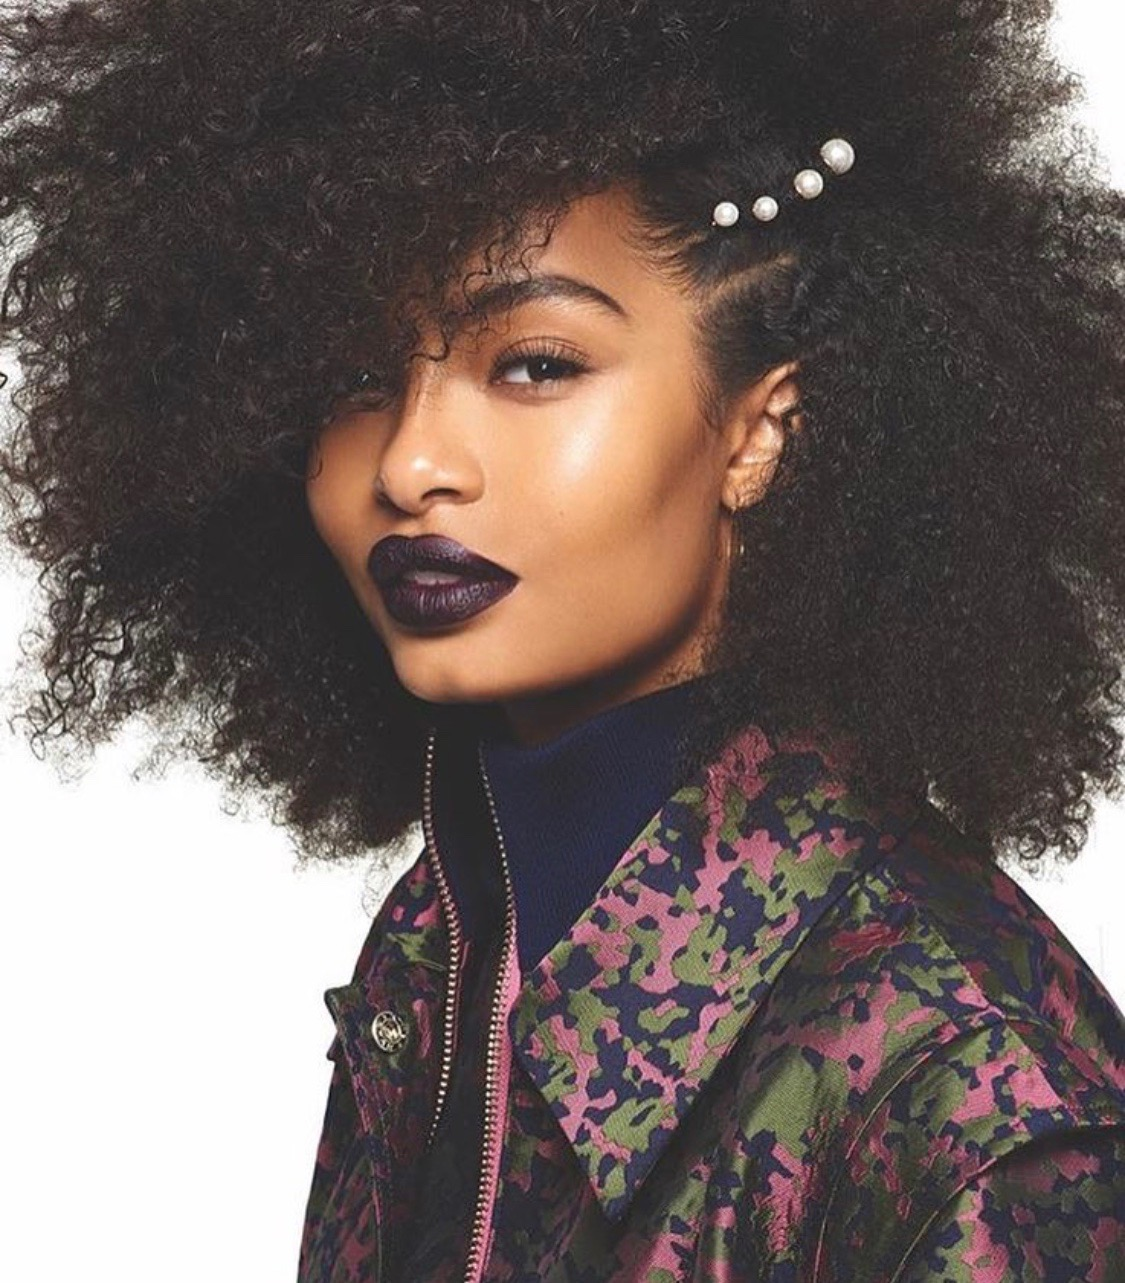 Yara Shahidi an actress, model and activist